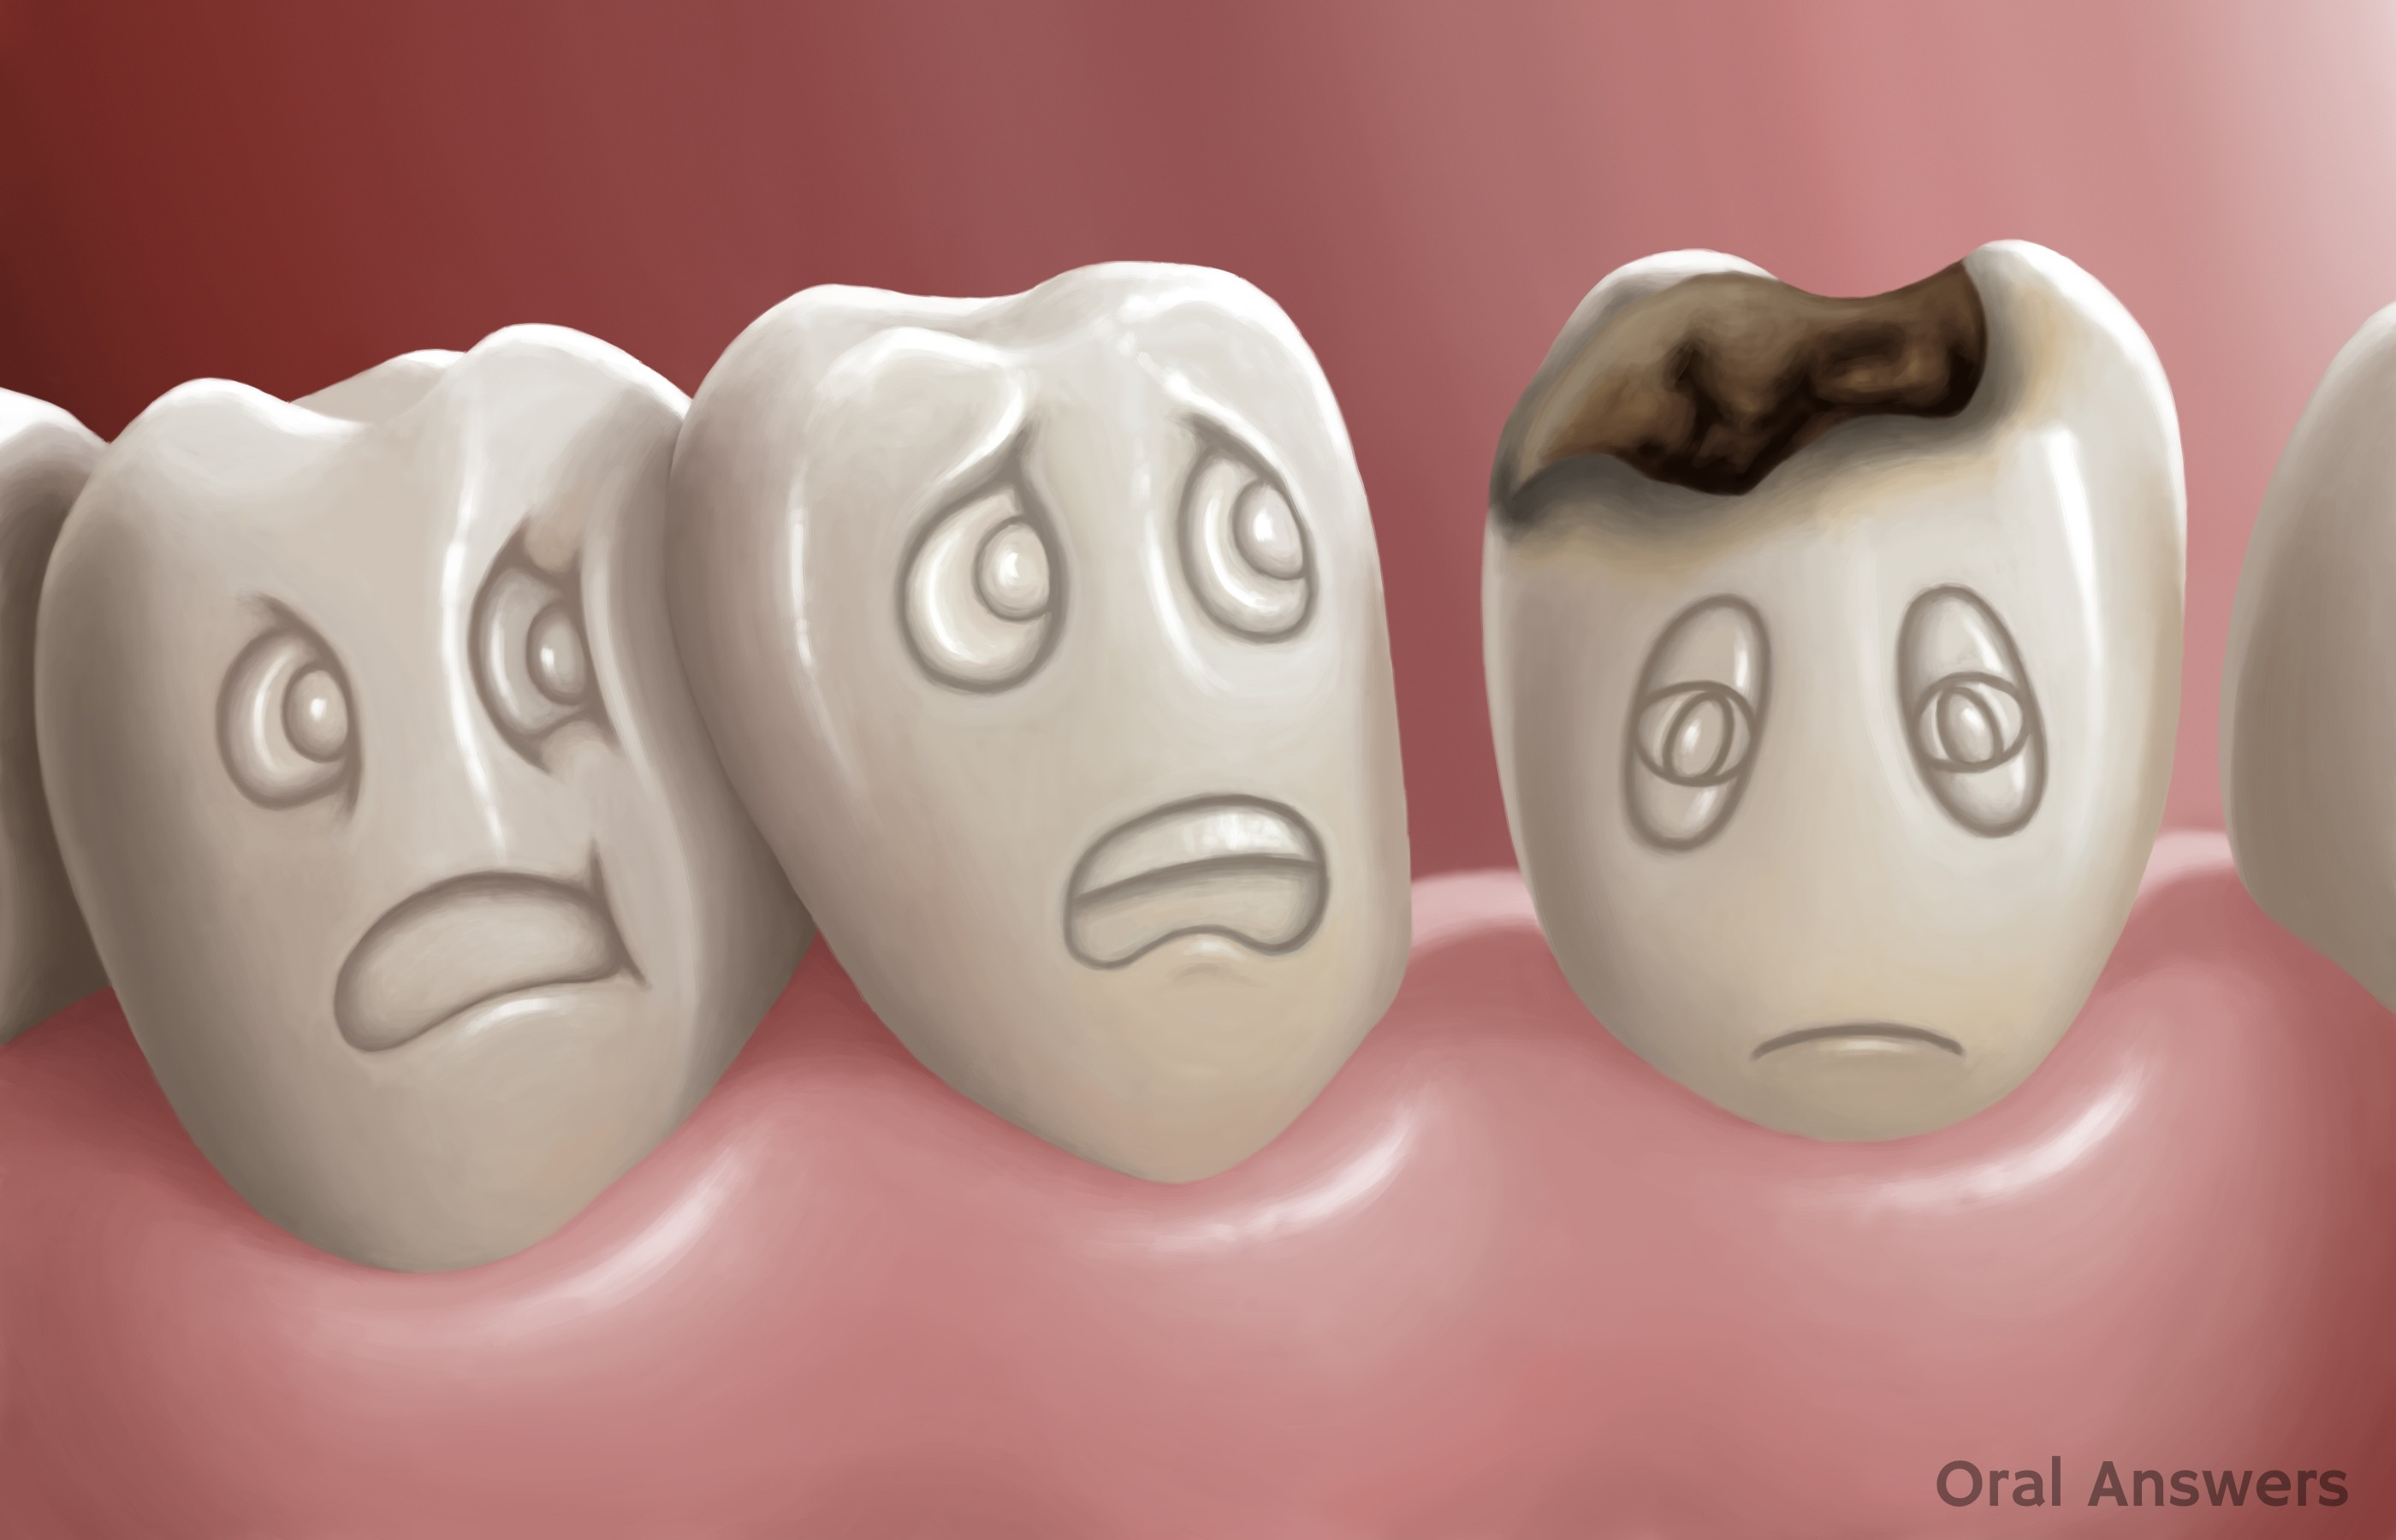 tooth decay Don't wait to call your dentist about tooth decay pain until your appointment, here are some tips for easing the pain when you have a cavity.